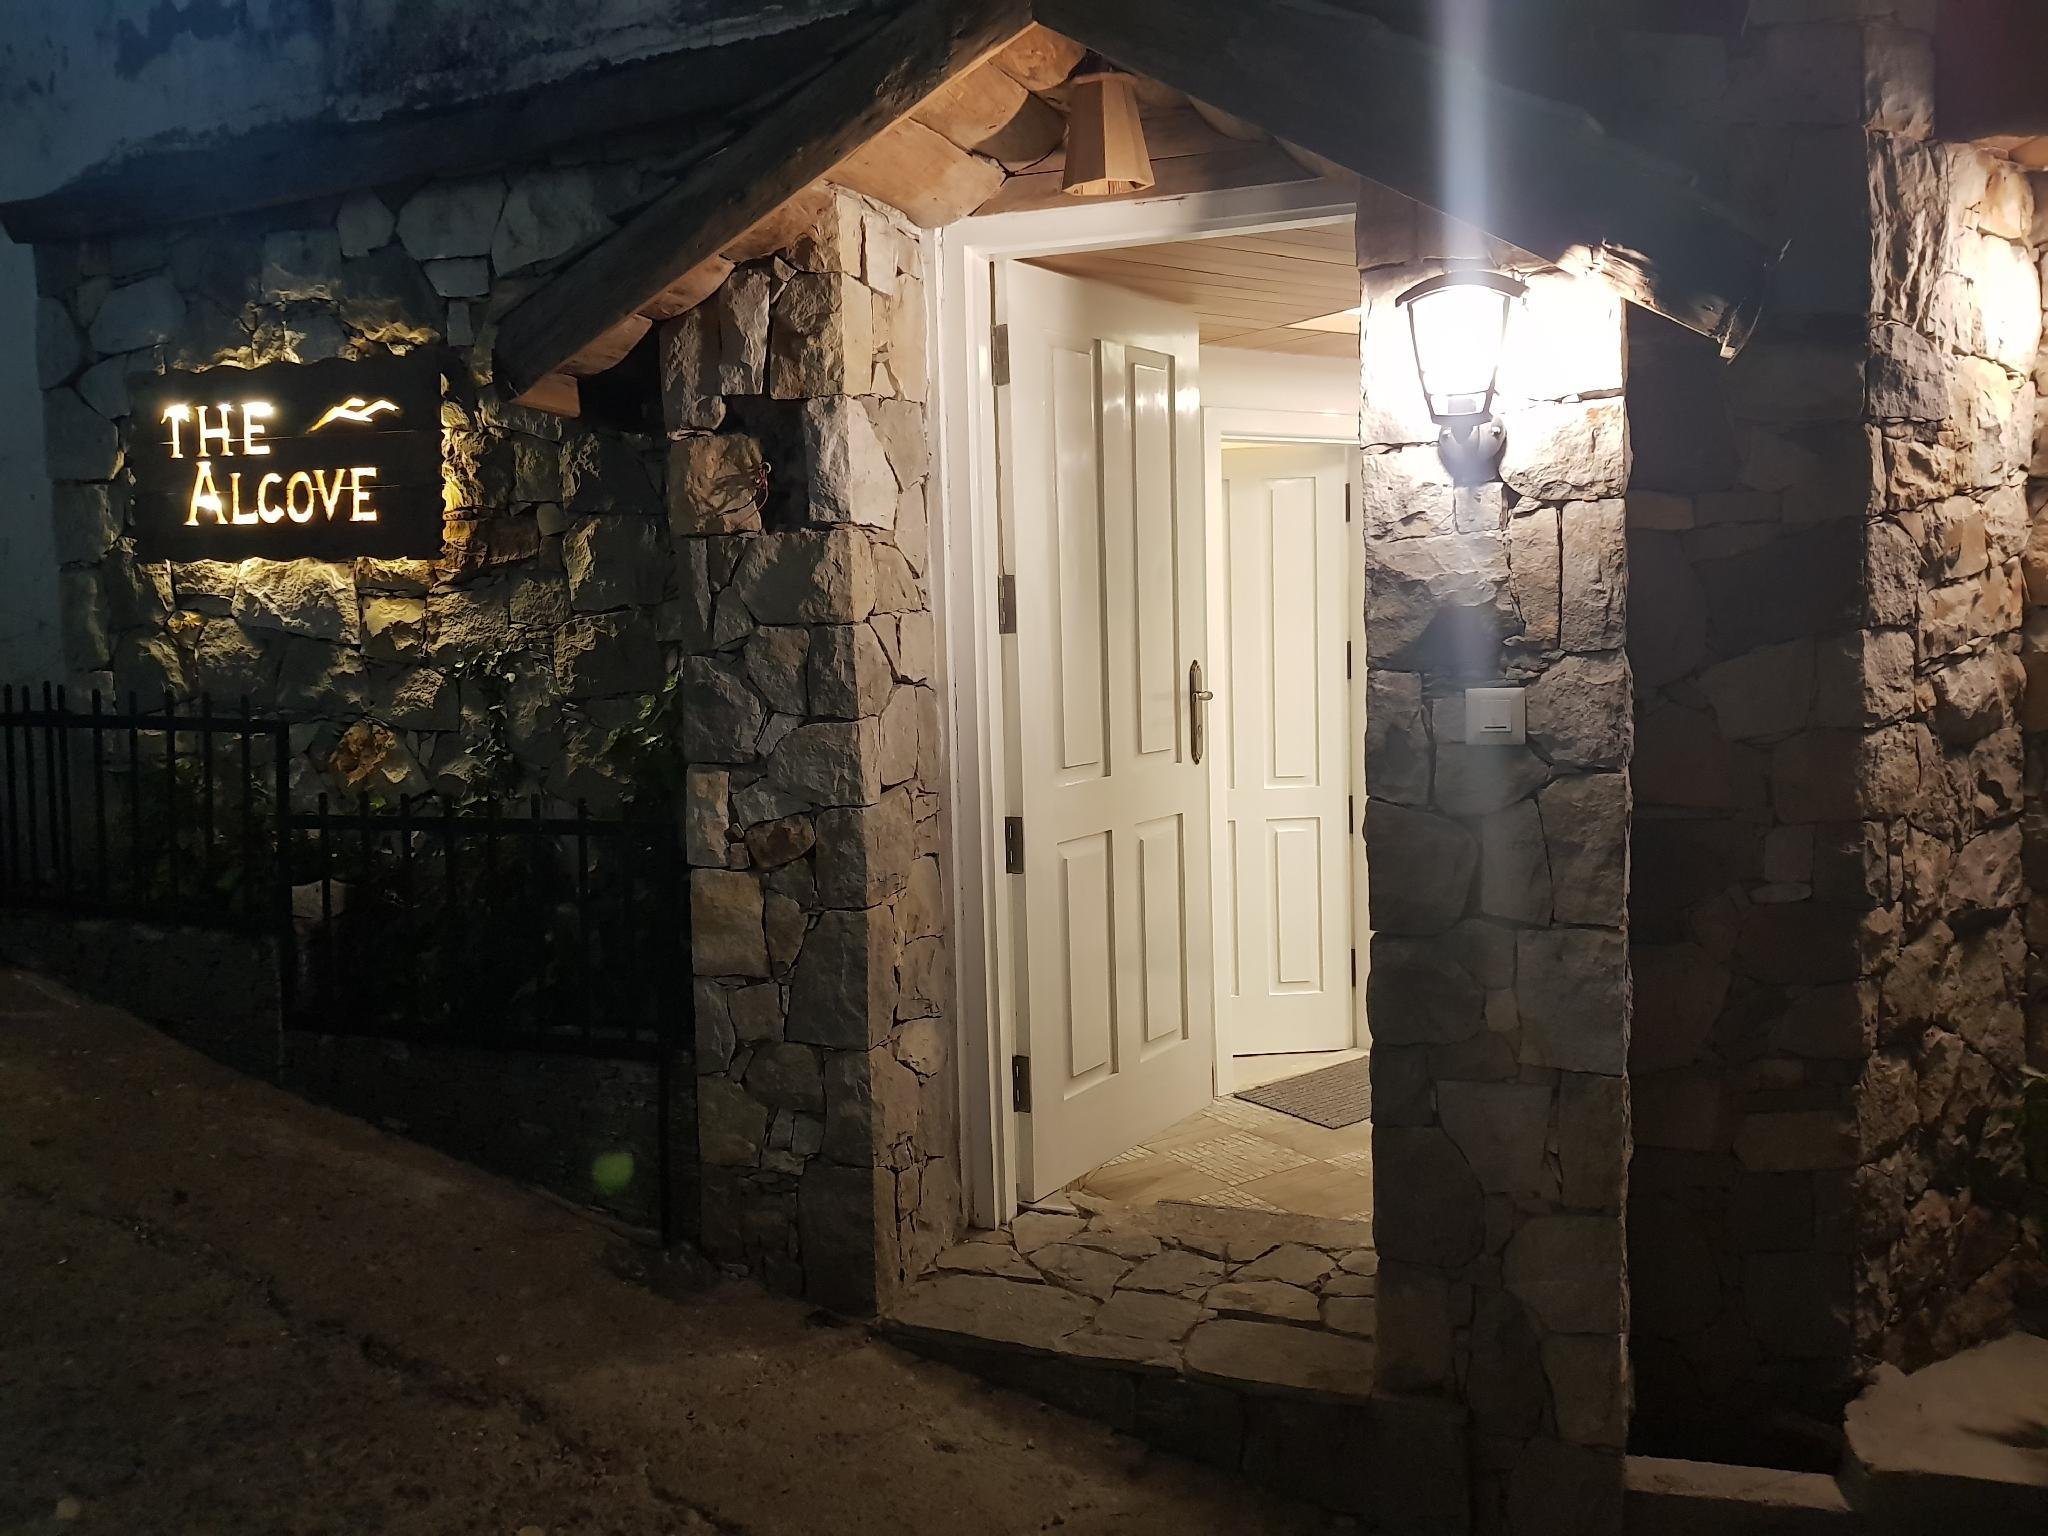 THE ALCOVE...... A Singular Experience